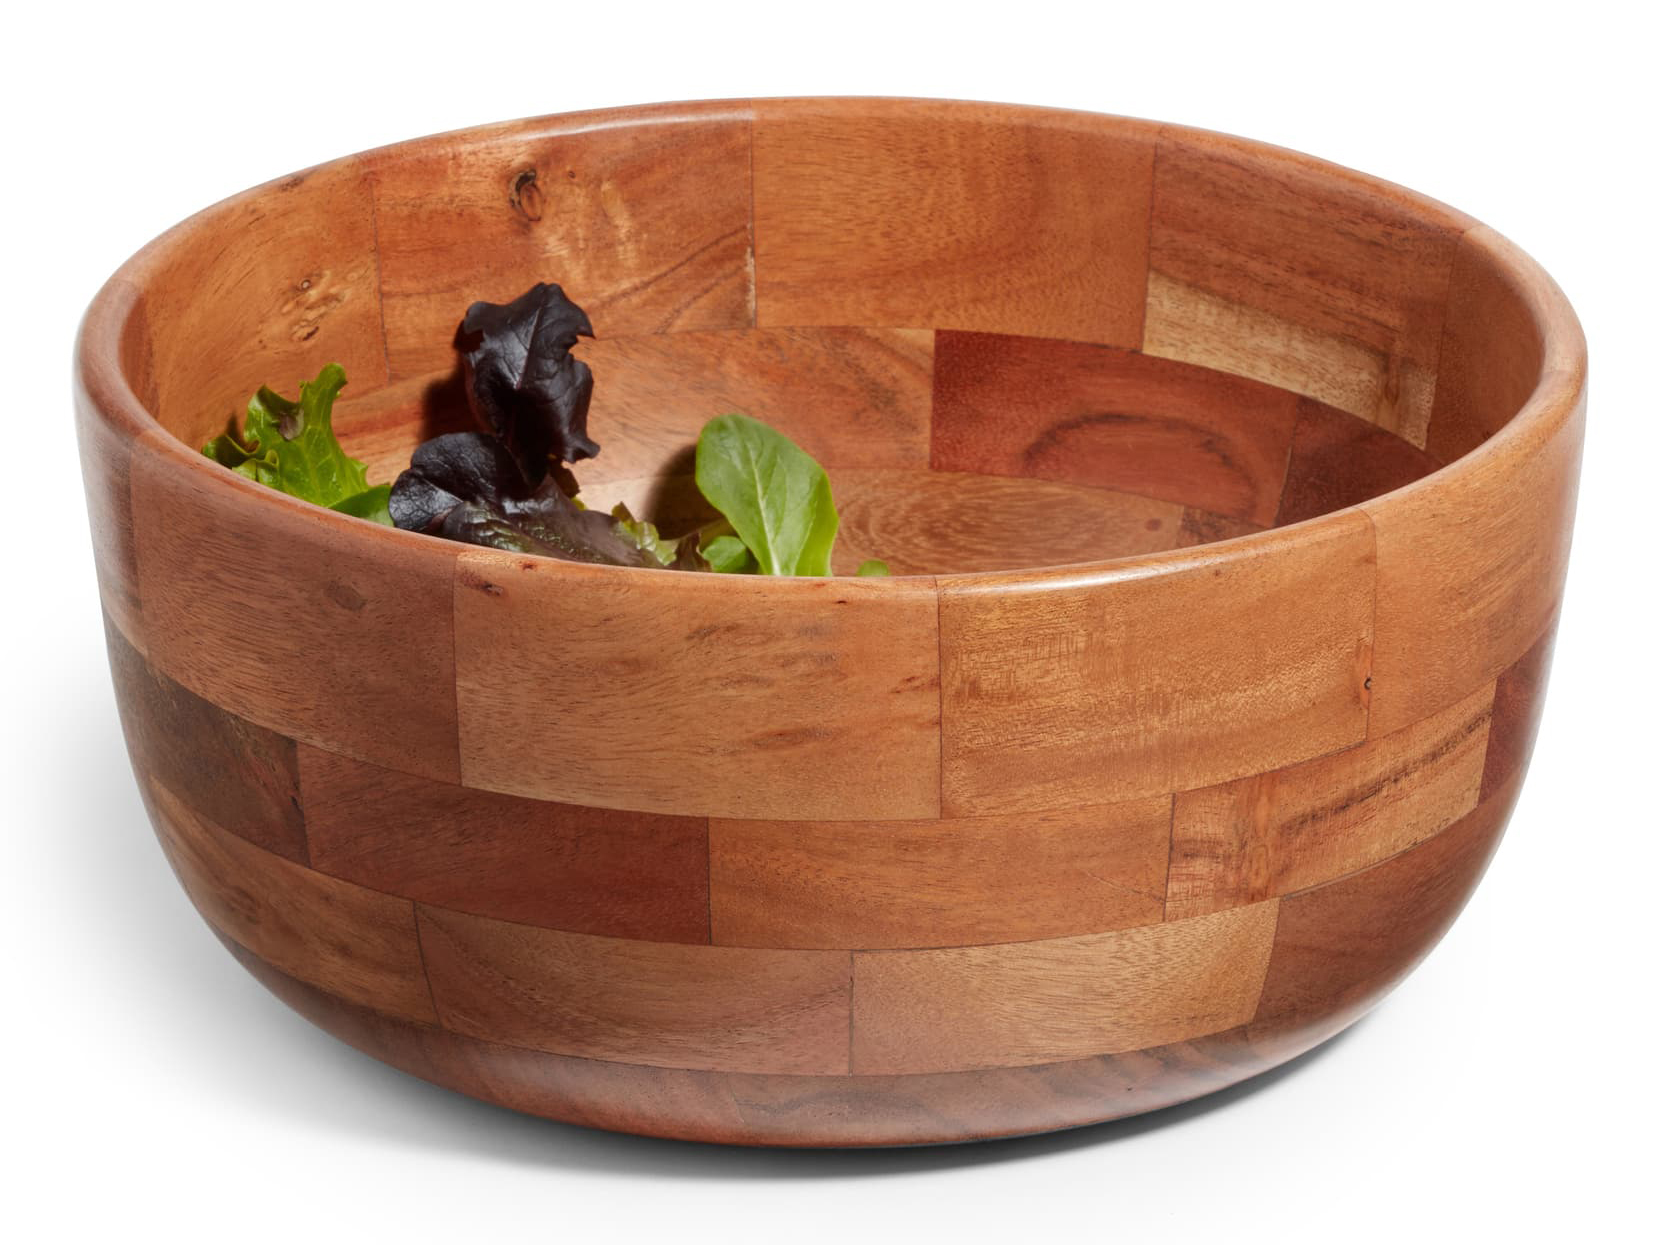 Nordstrom at Home Medium Wood Serving Bowl